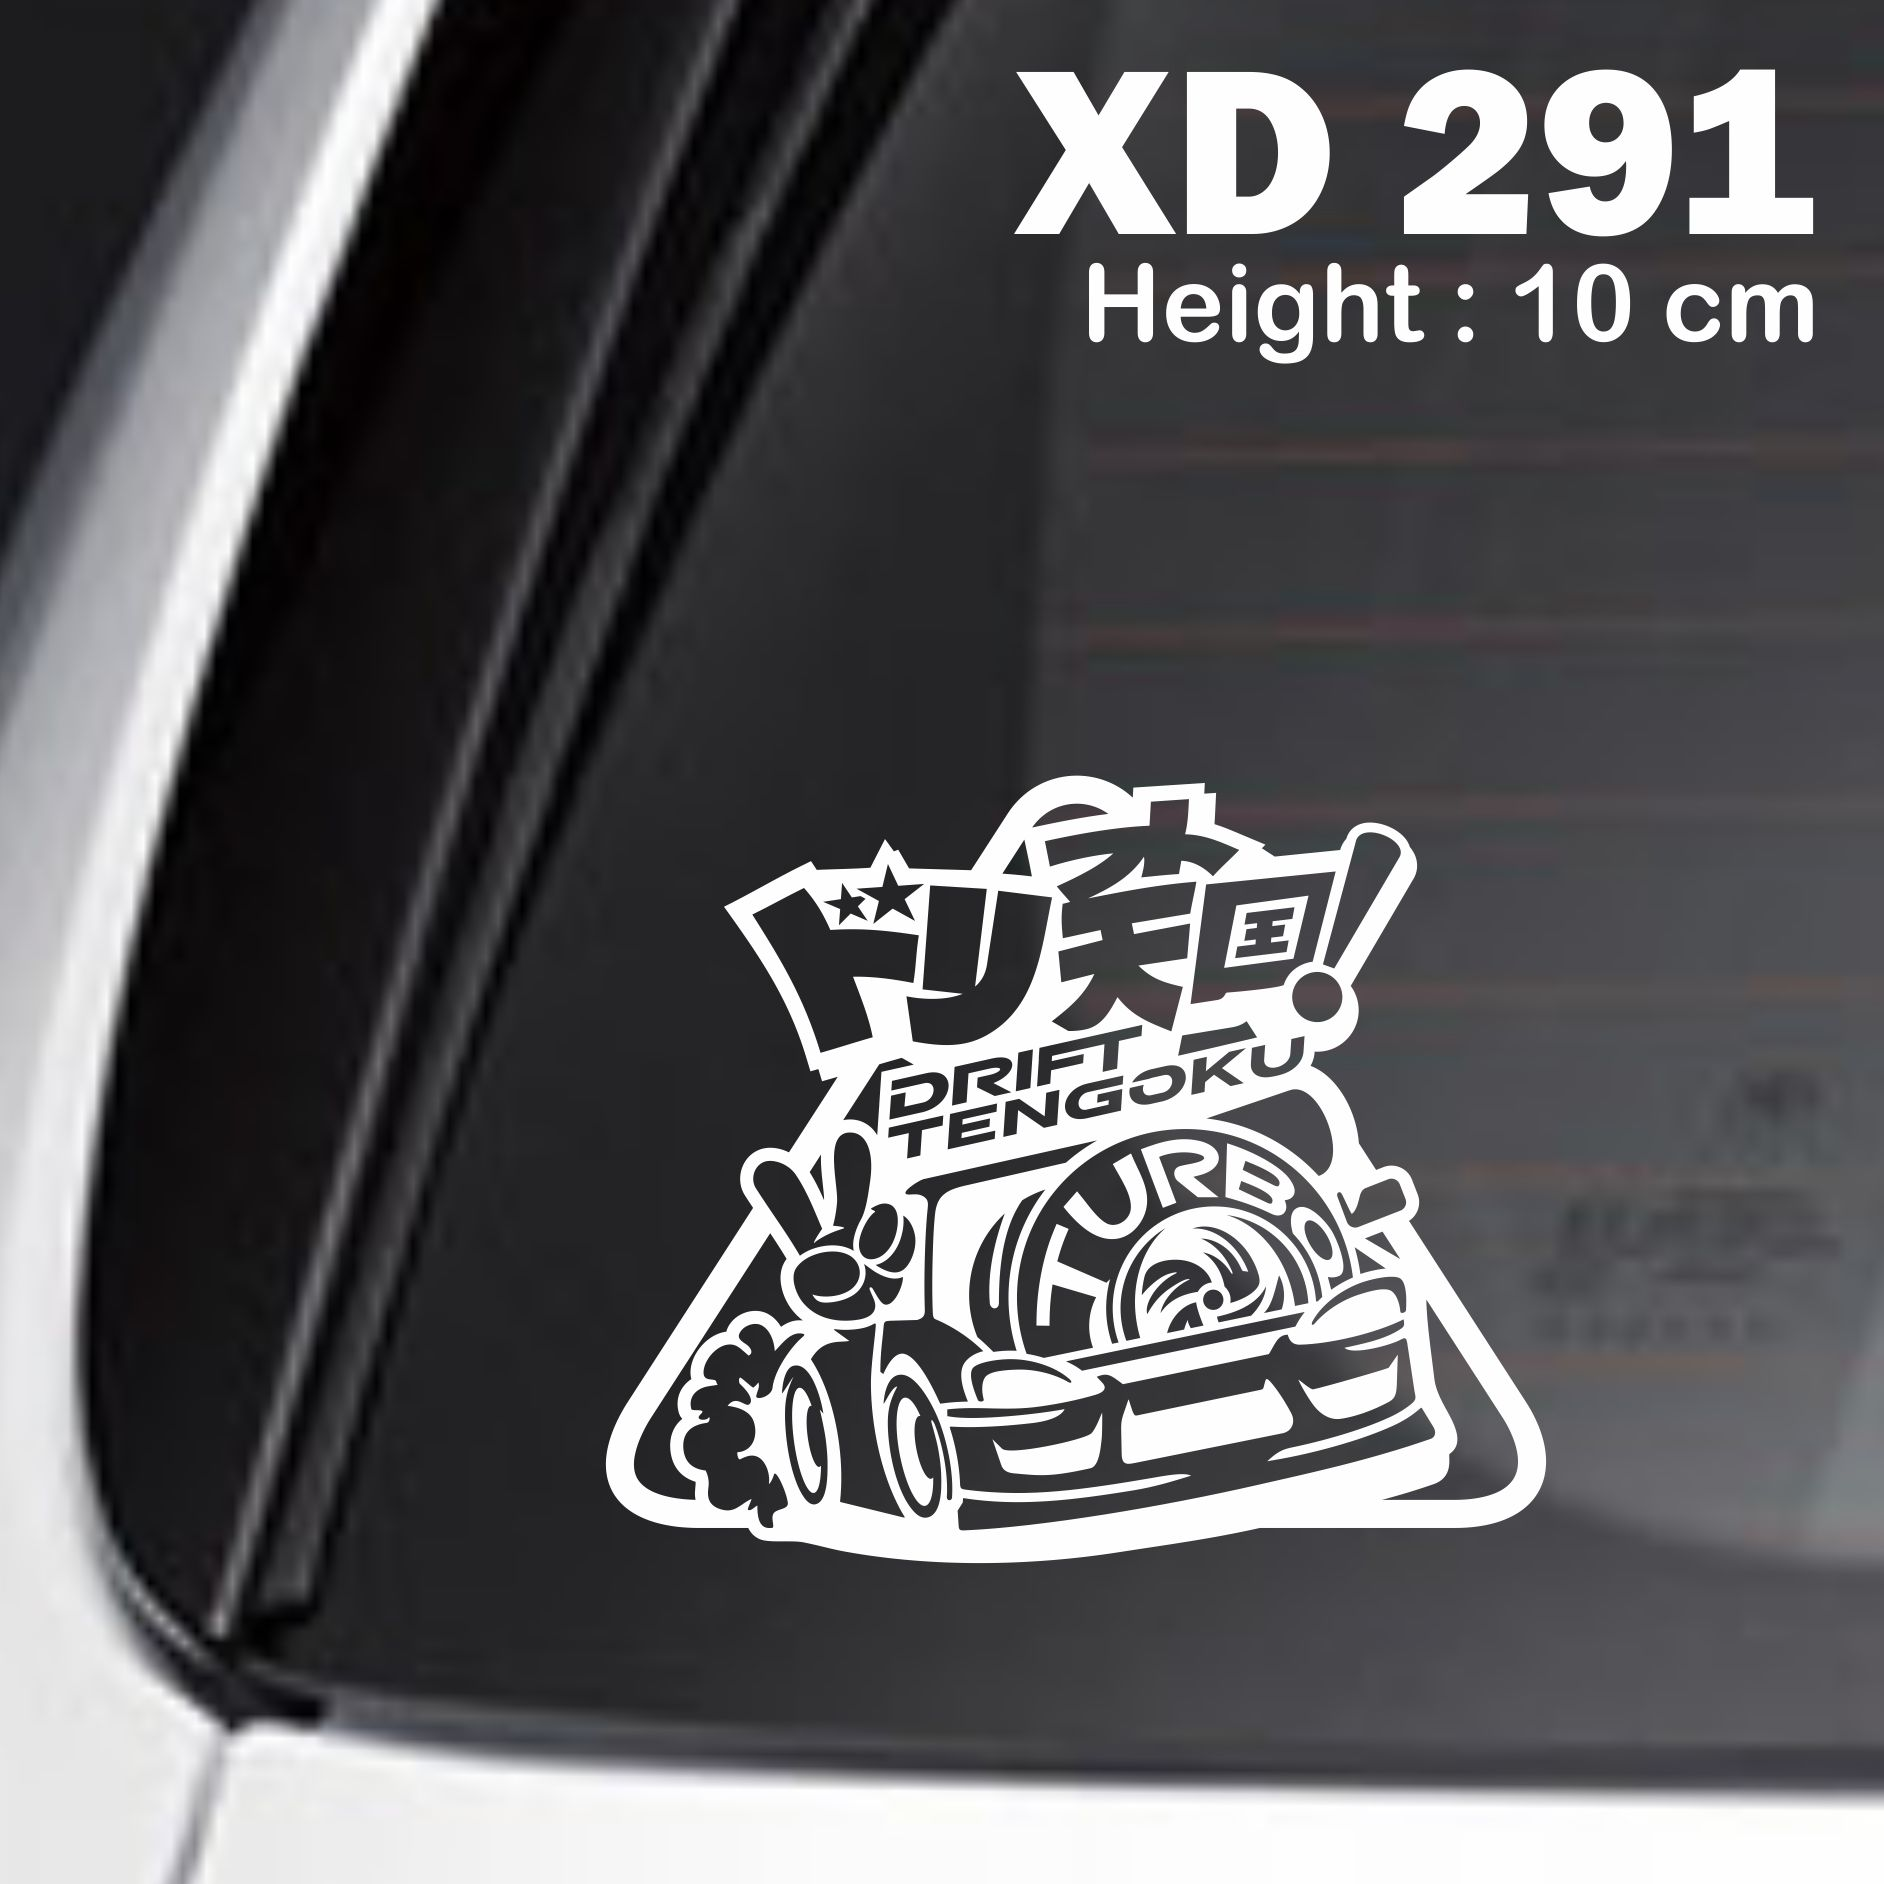 sticker mobil jdm drift tangoku turbo otomotif nismo civic jazz XD-291